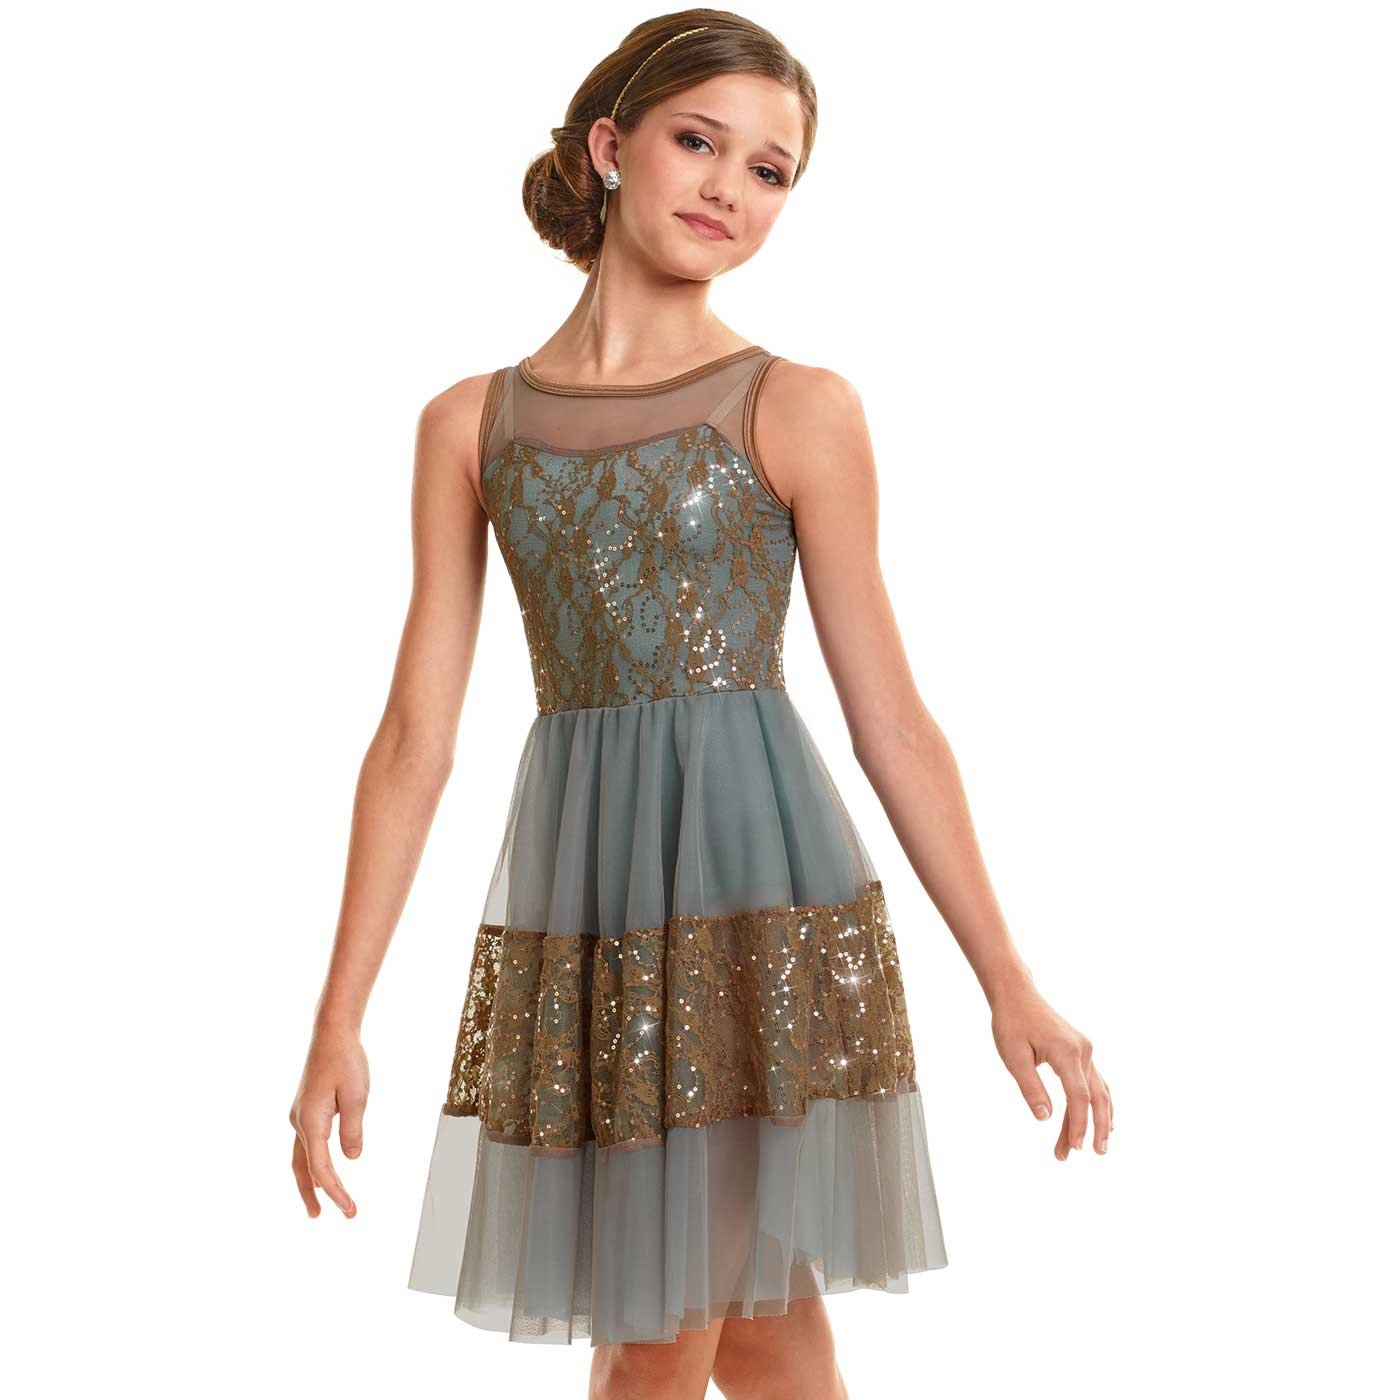 Image result for with kindness call costumes